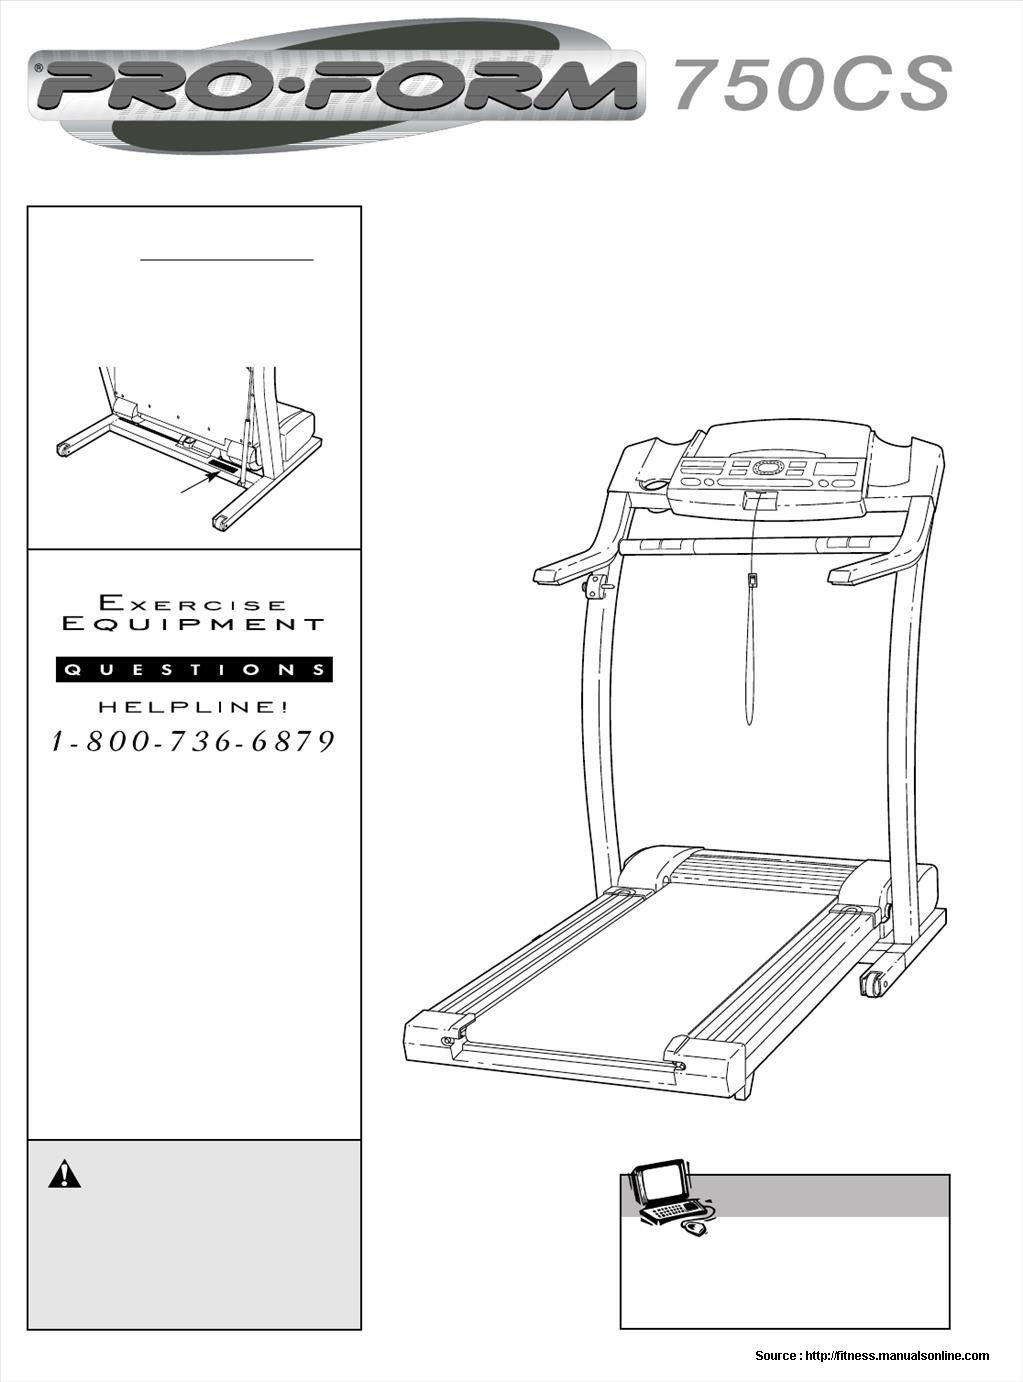 Proform 750 Cs Treadmill Manual